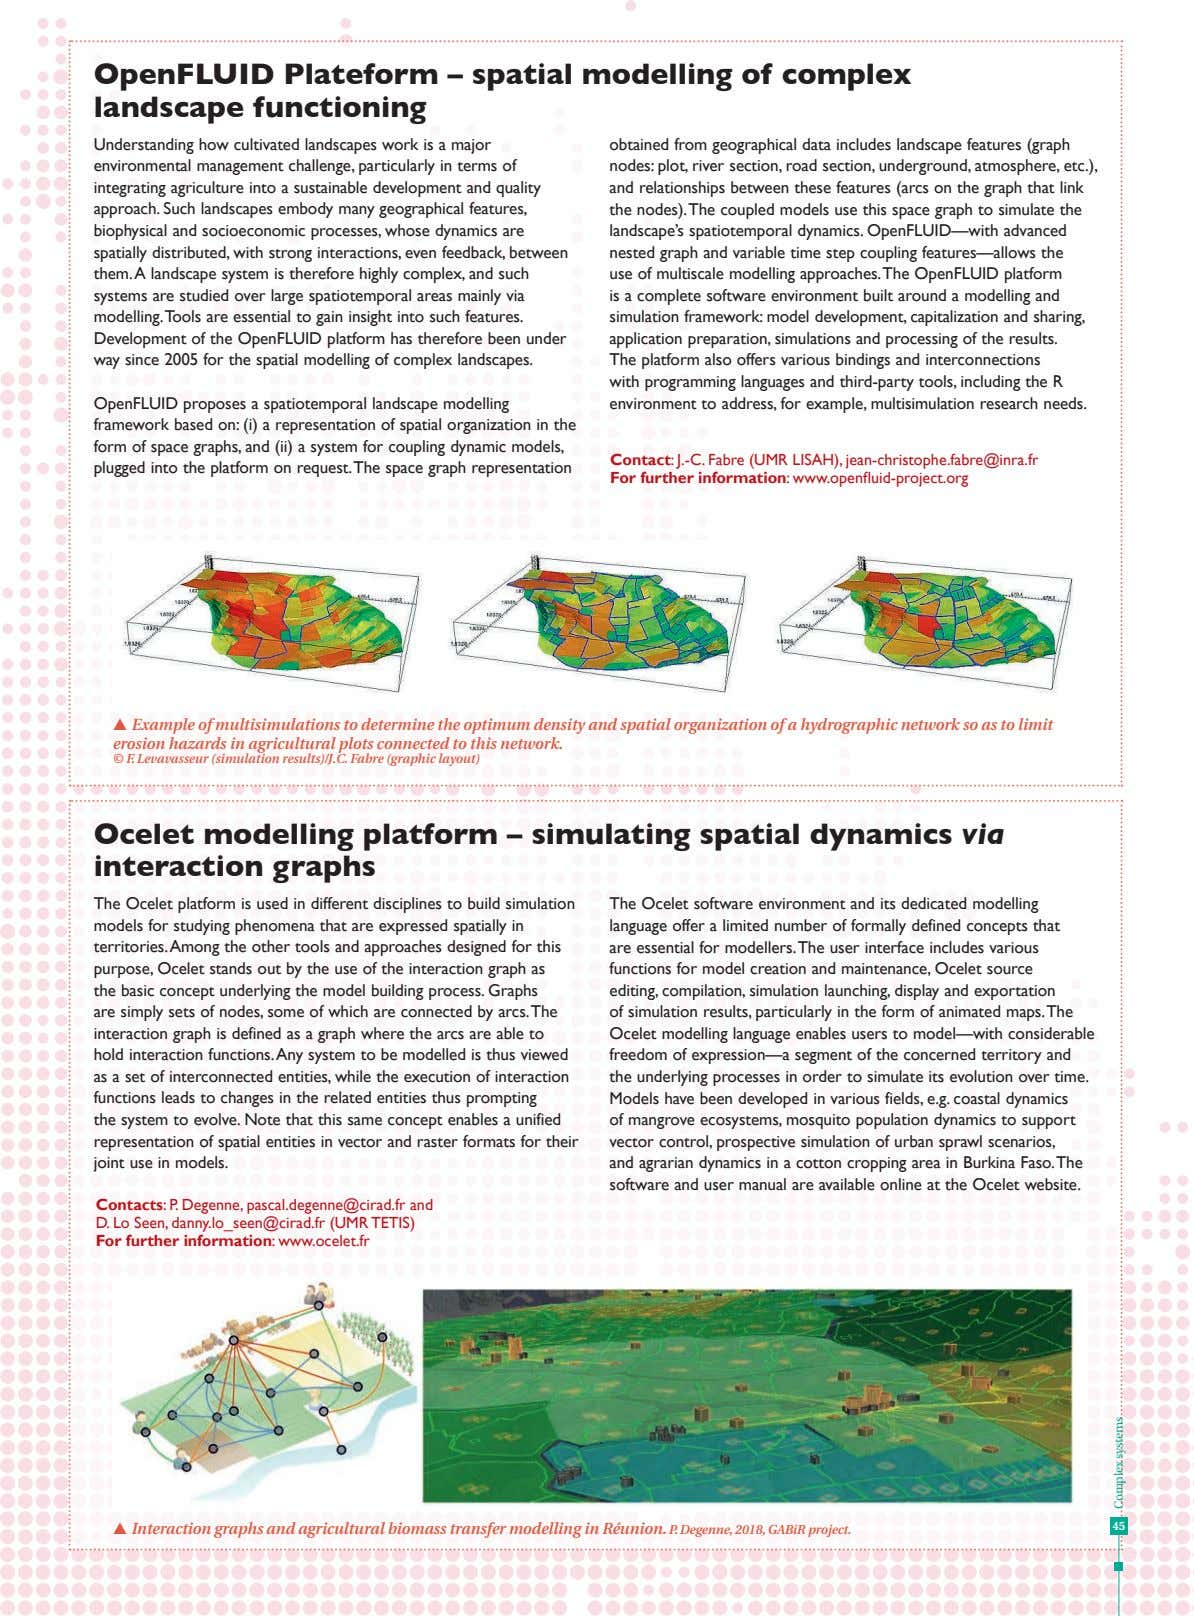 OpenFLUID Plateform – spatial modelling of complex landscape functioning Understanding how cultivated landscapes work